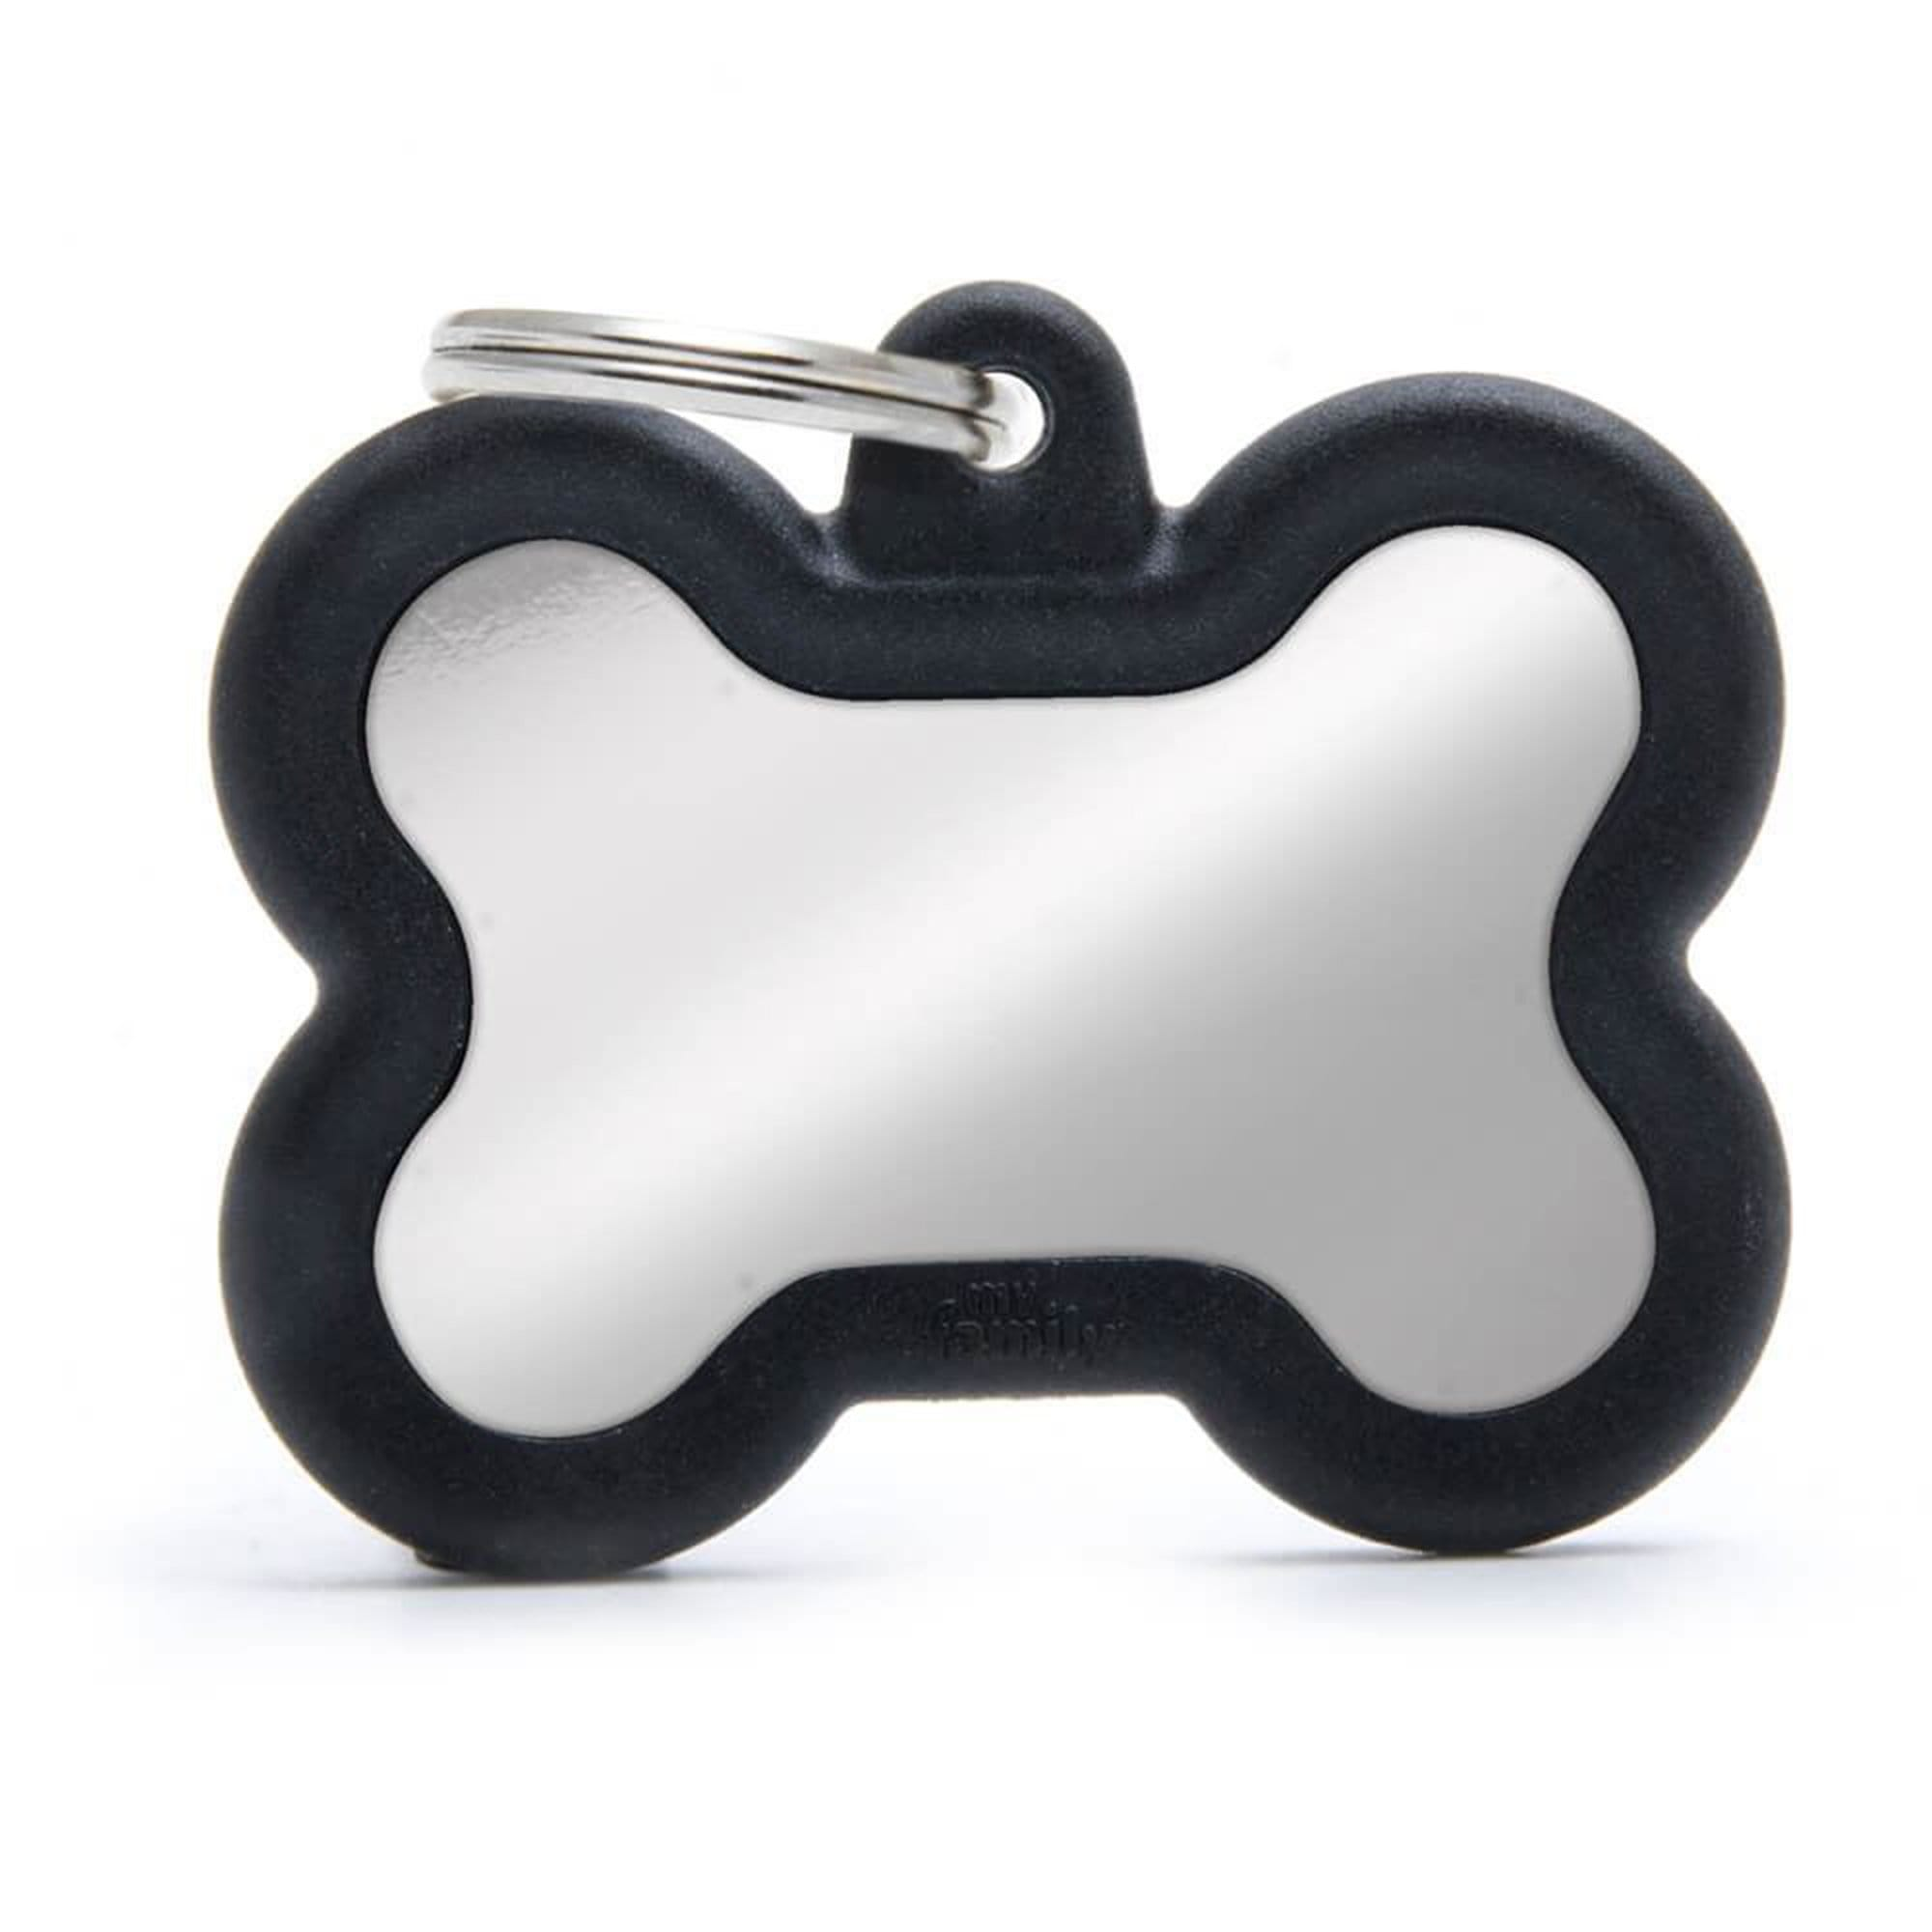 My Family Chromed Bone With Black Rubber Dog I.D. Tags 4F4B